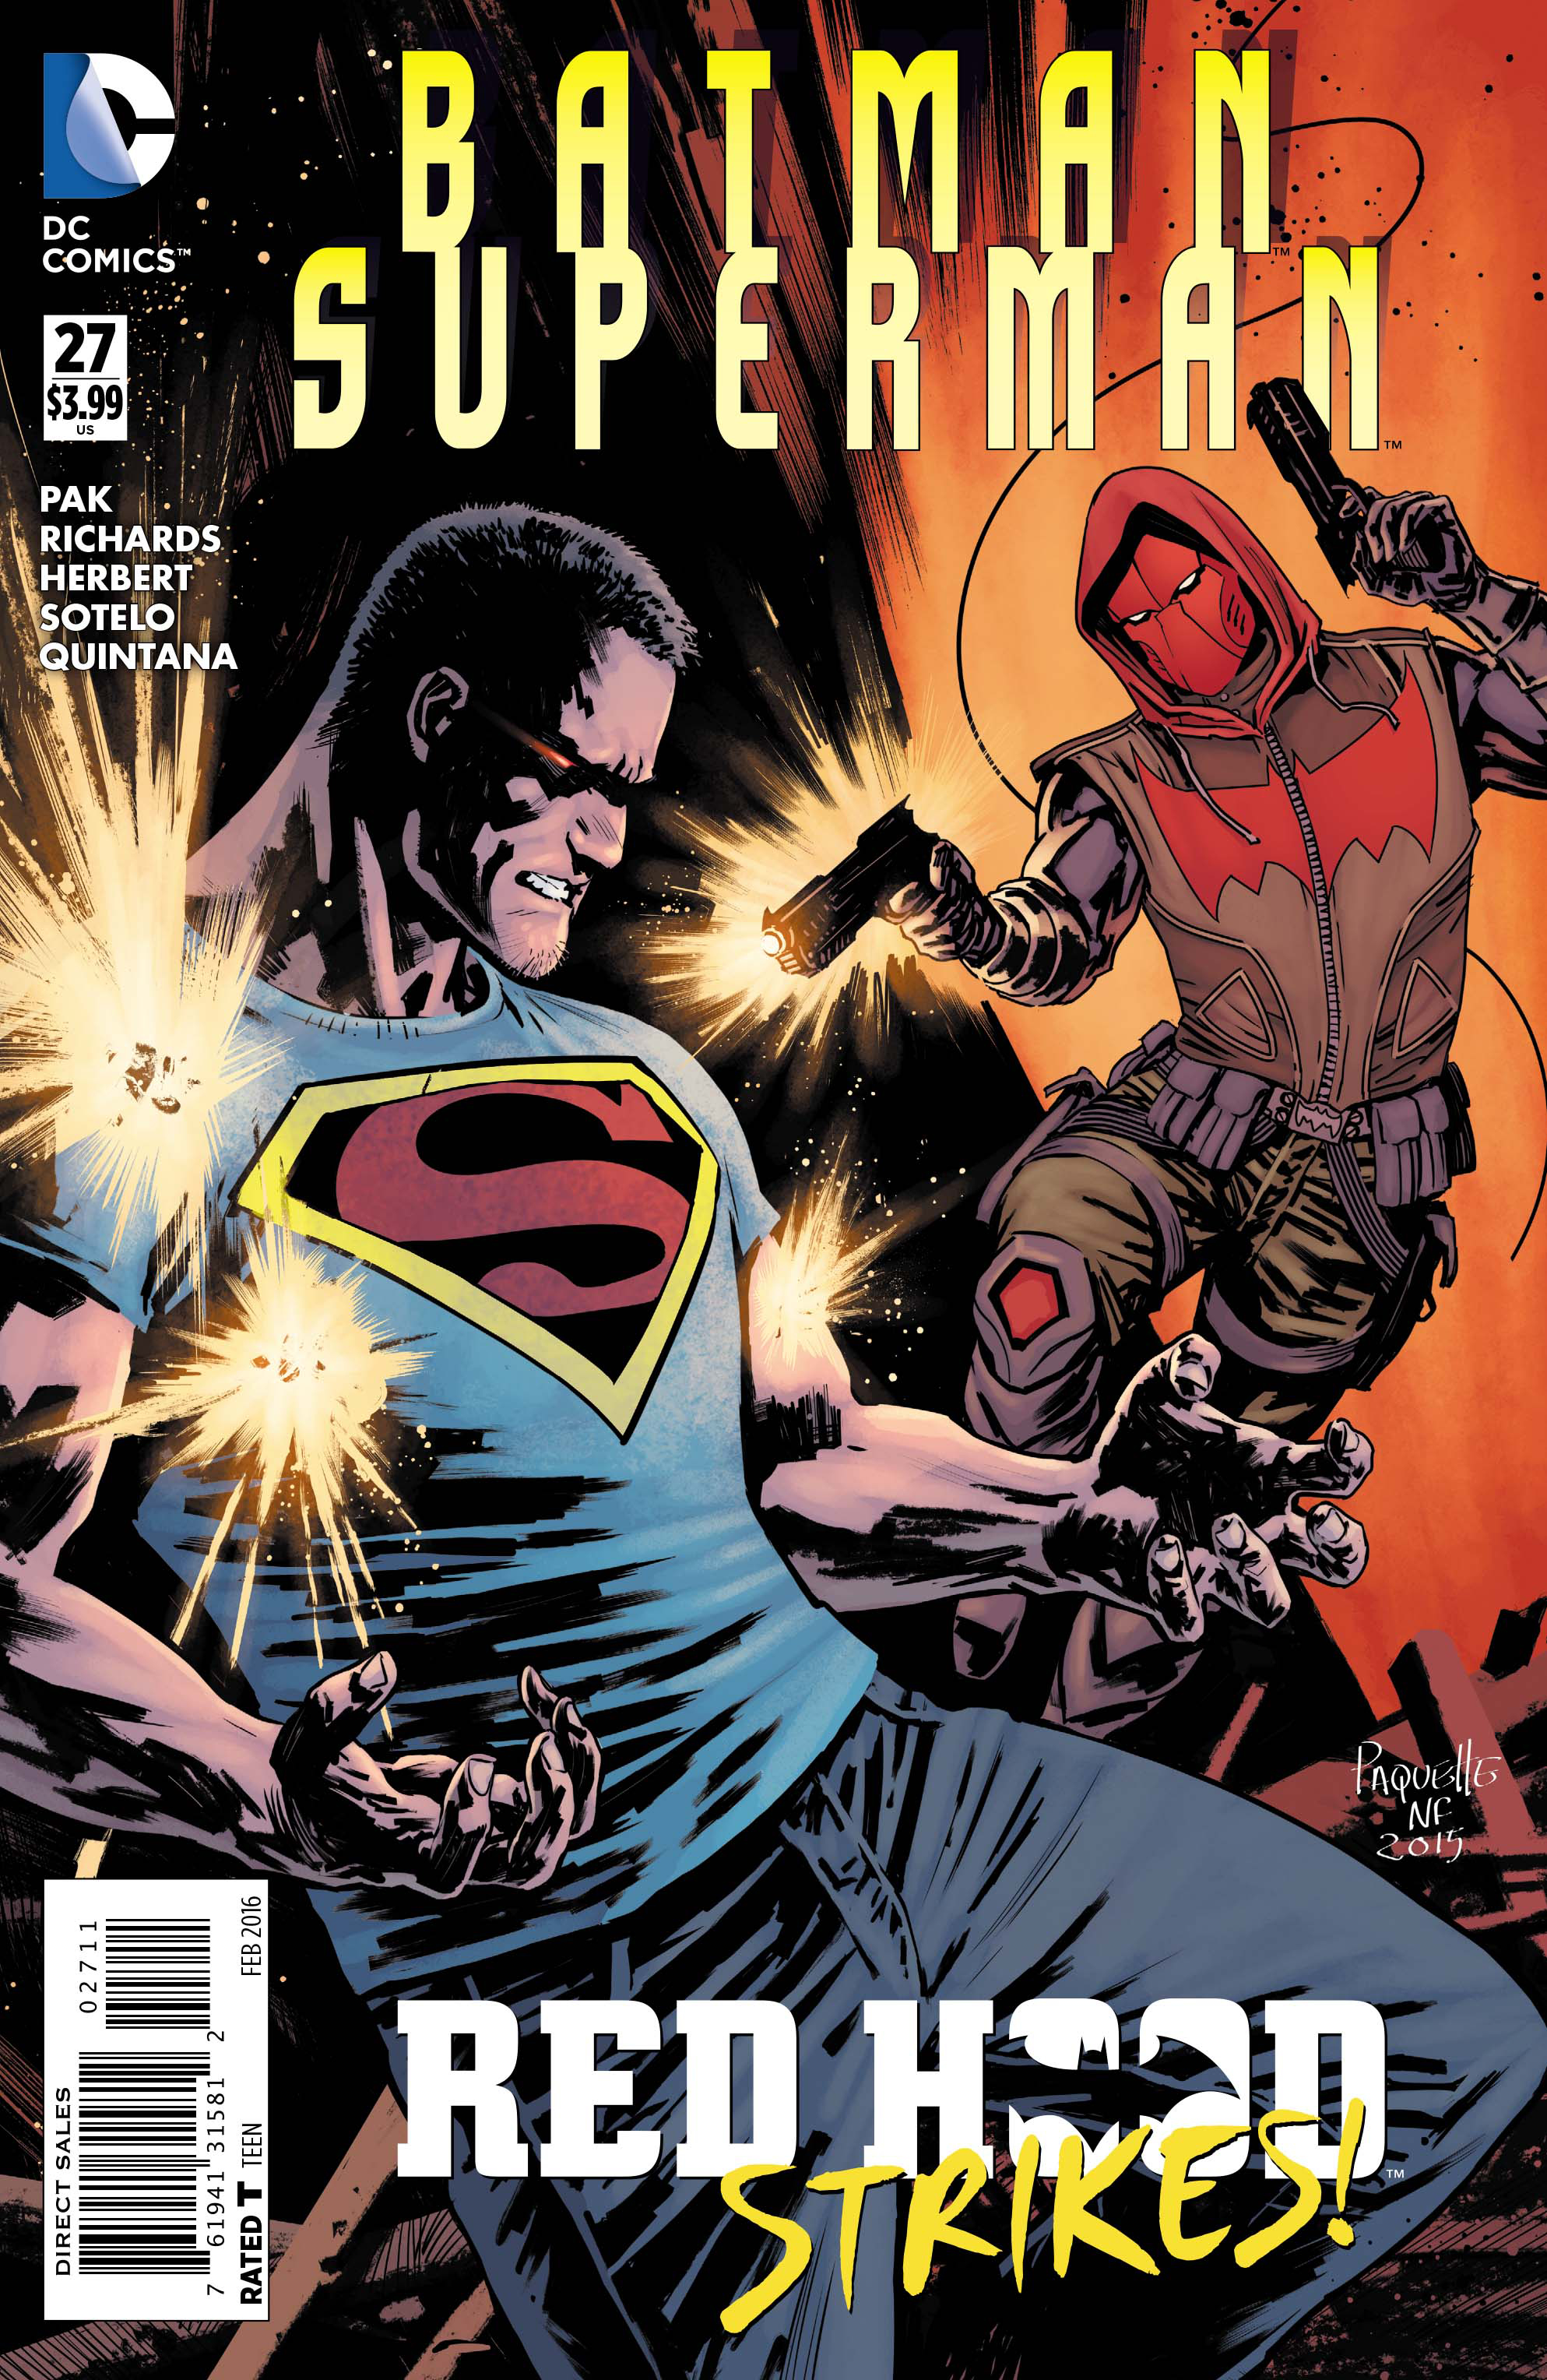 BATMAN SUPERMAN #27